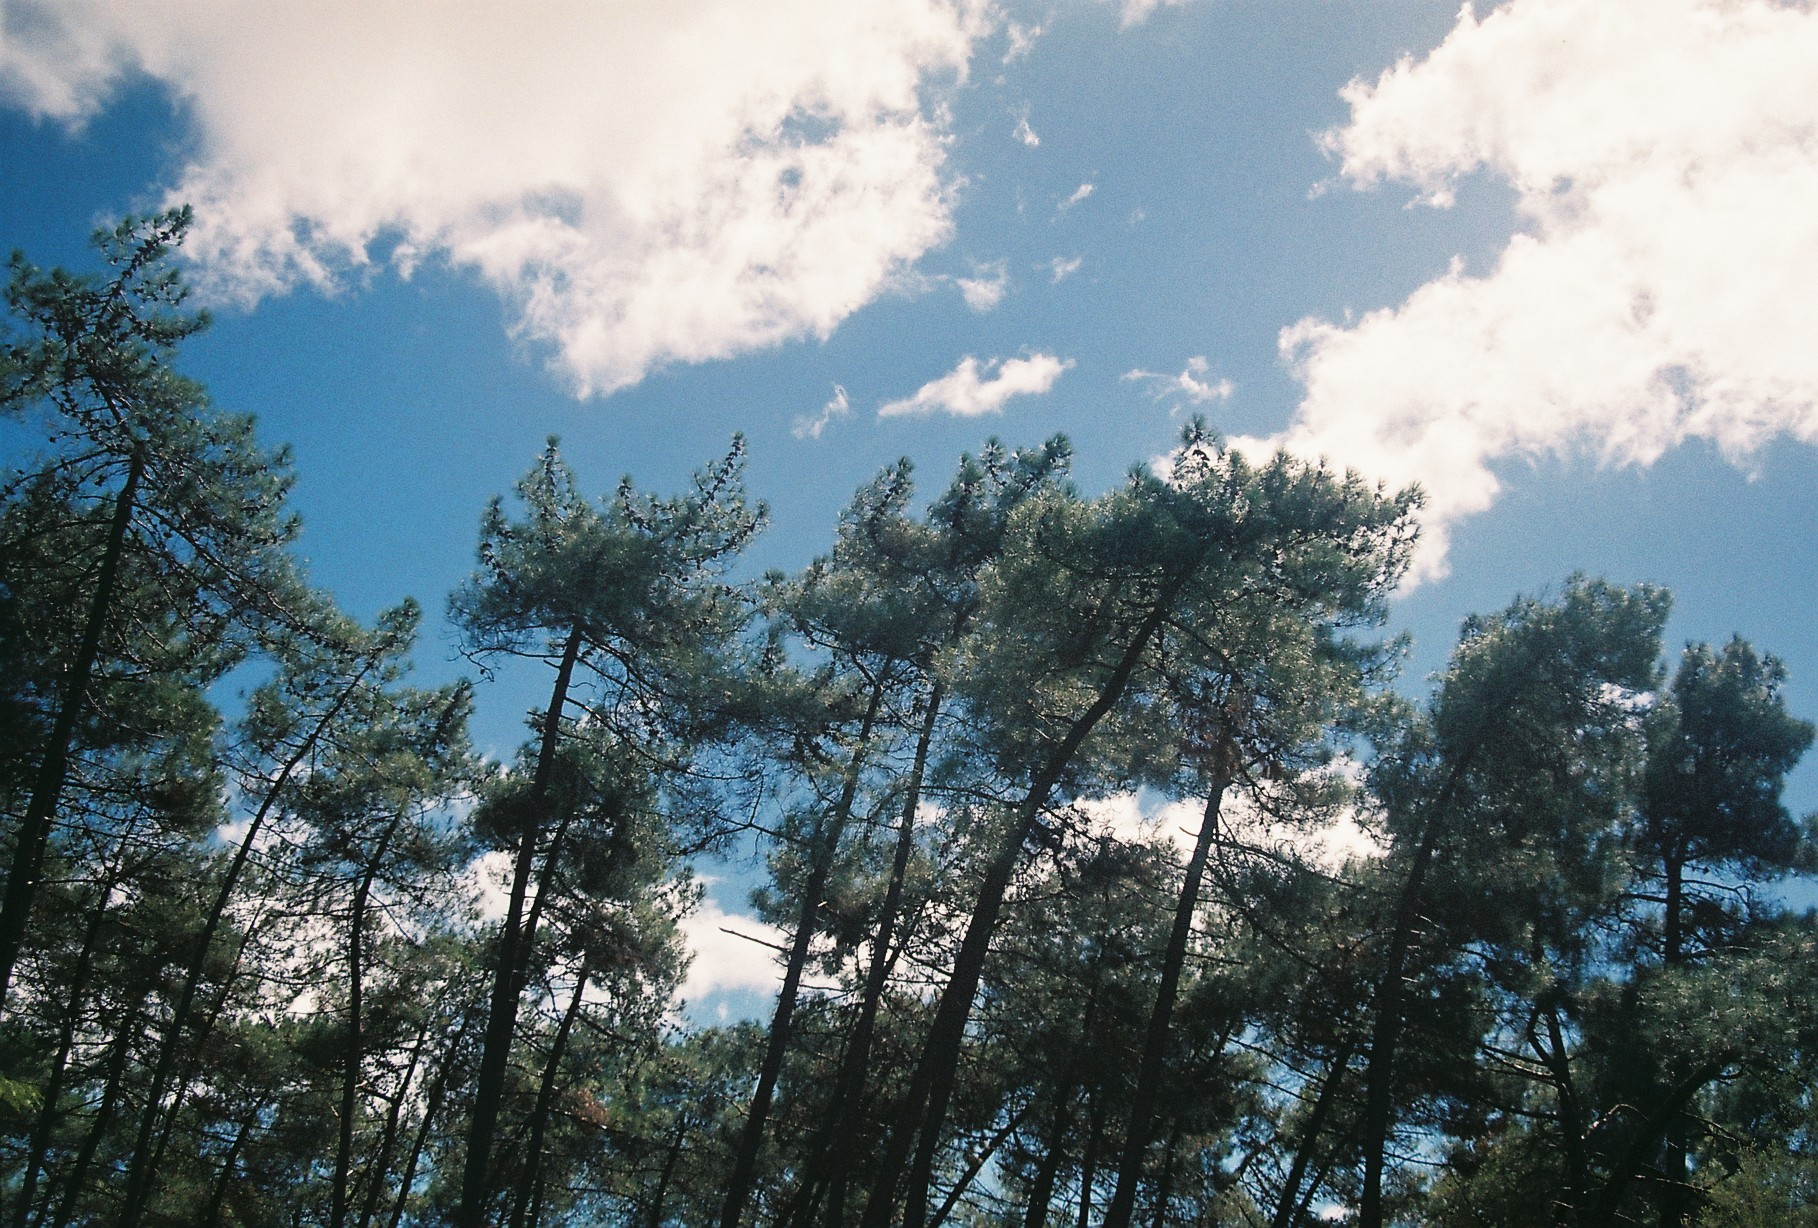 spindly pine trees against a blue sky with fluffy clouds